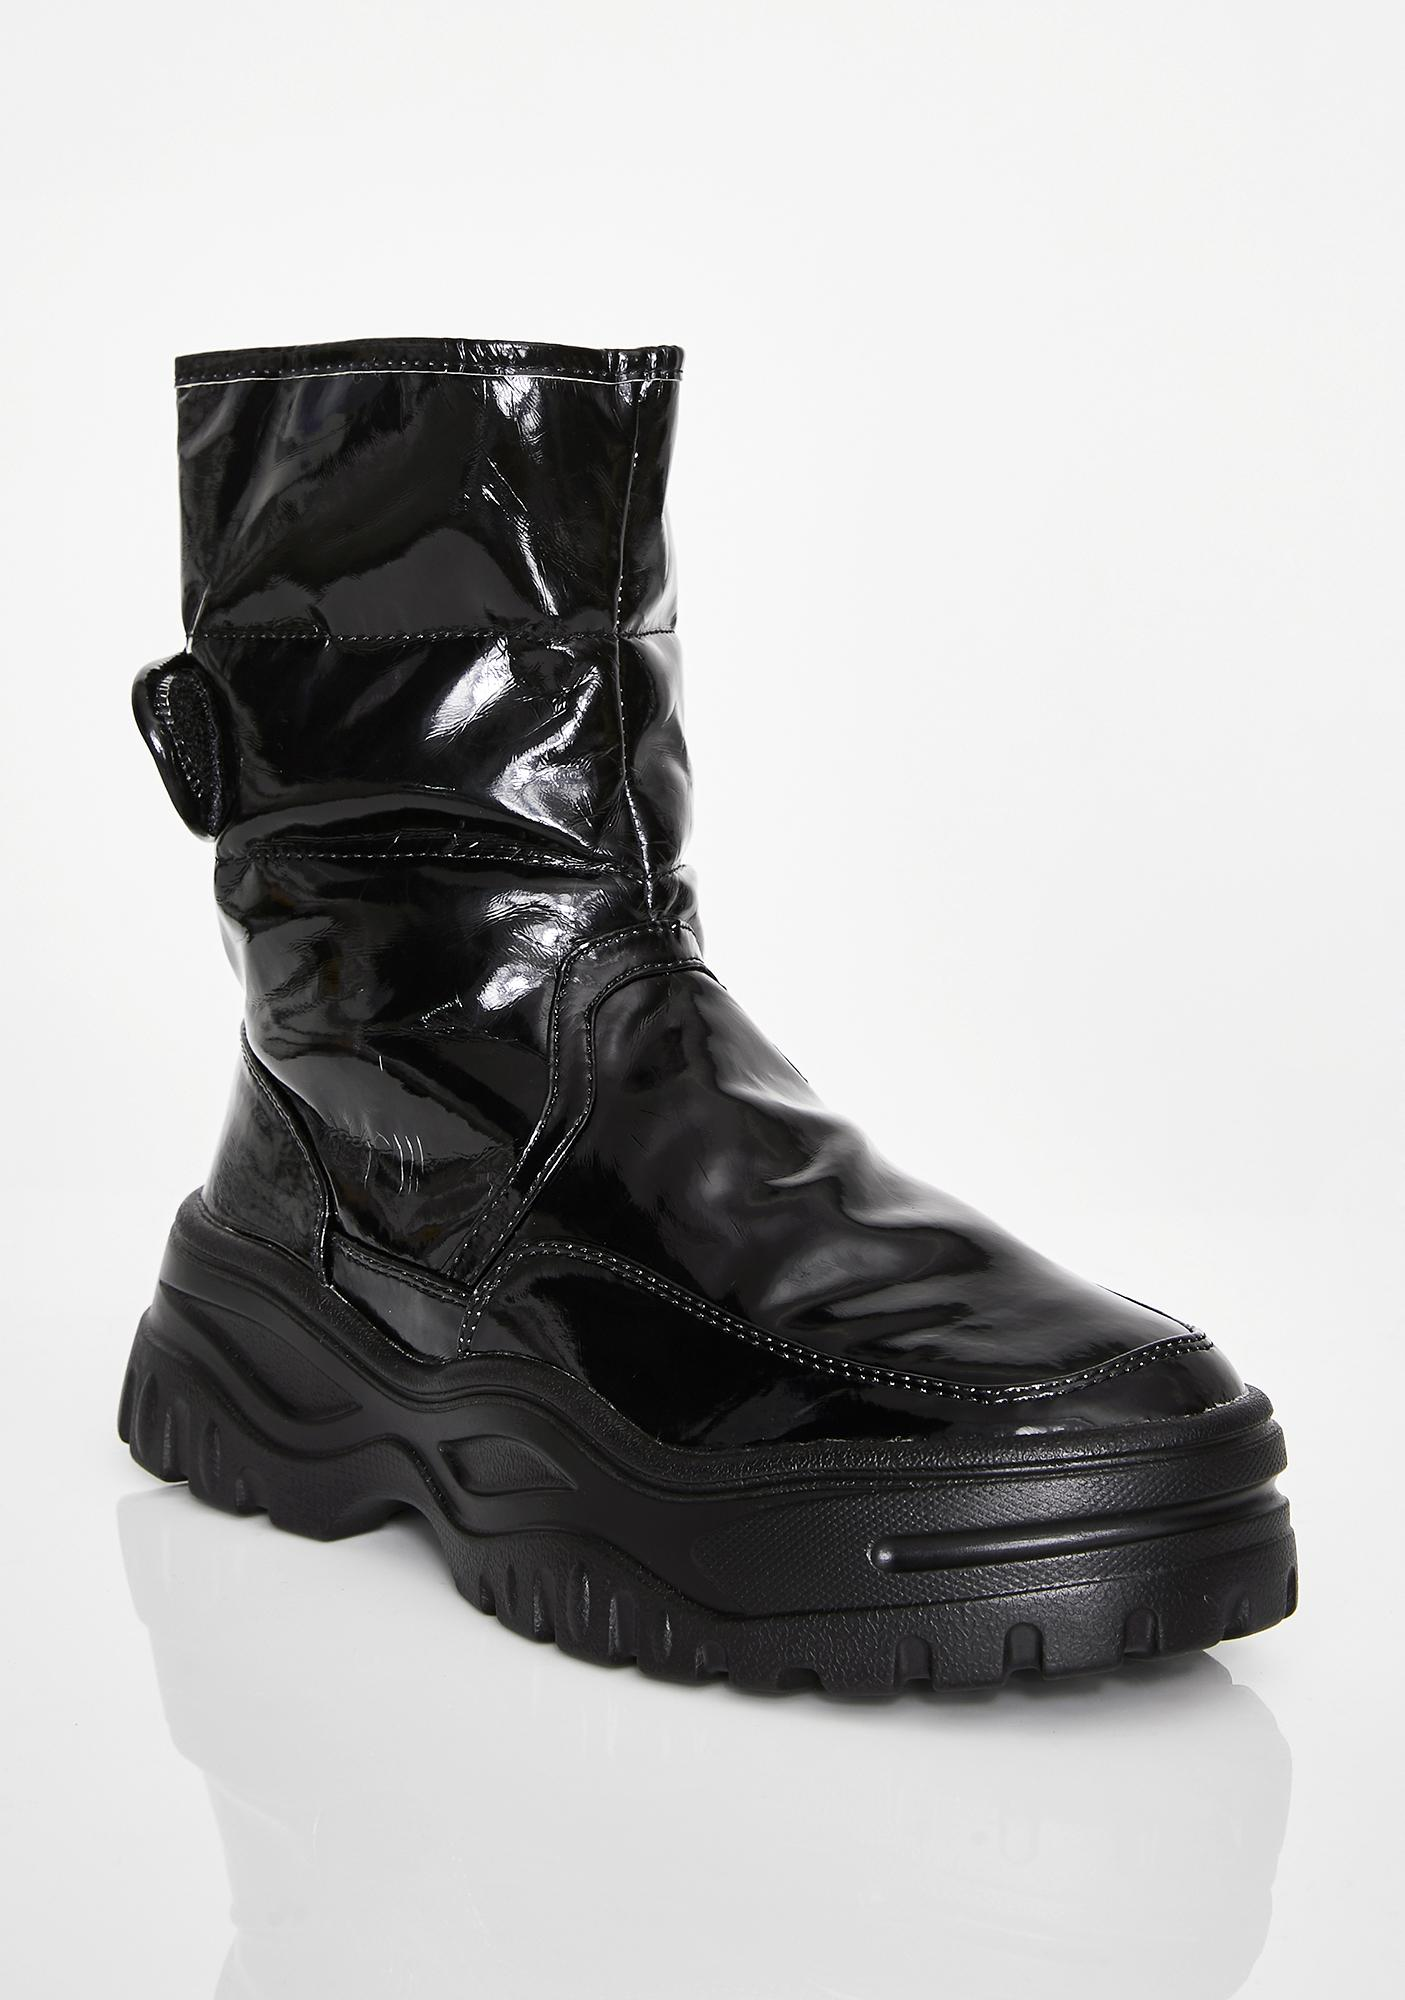 Blackout Atmospheric Freeze Puffer Boots